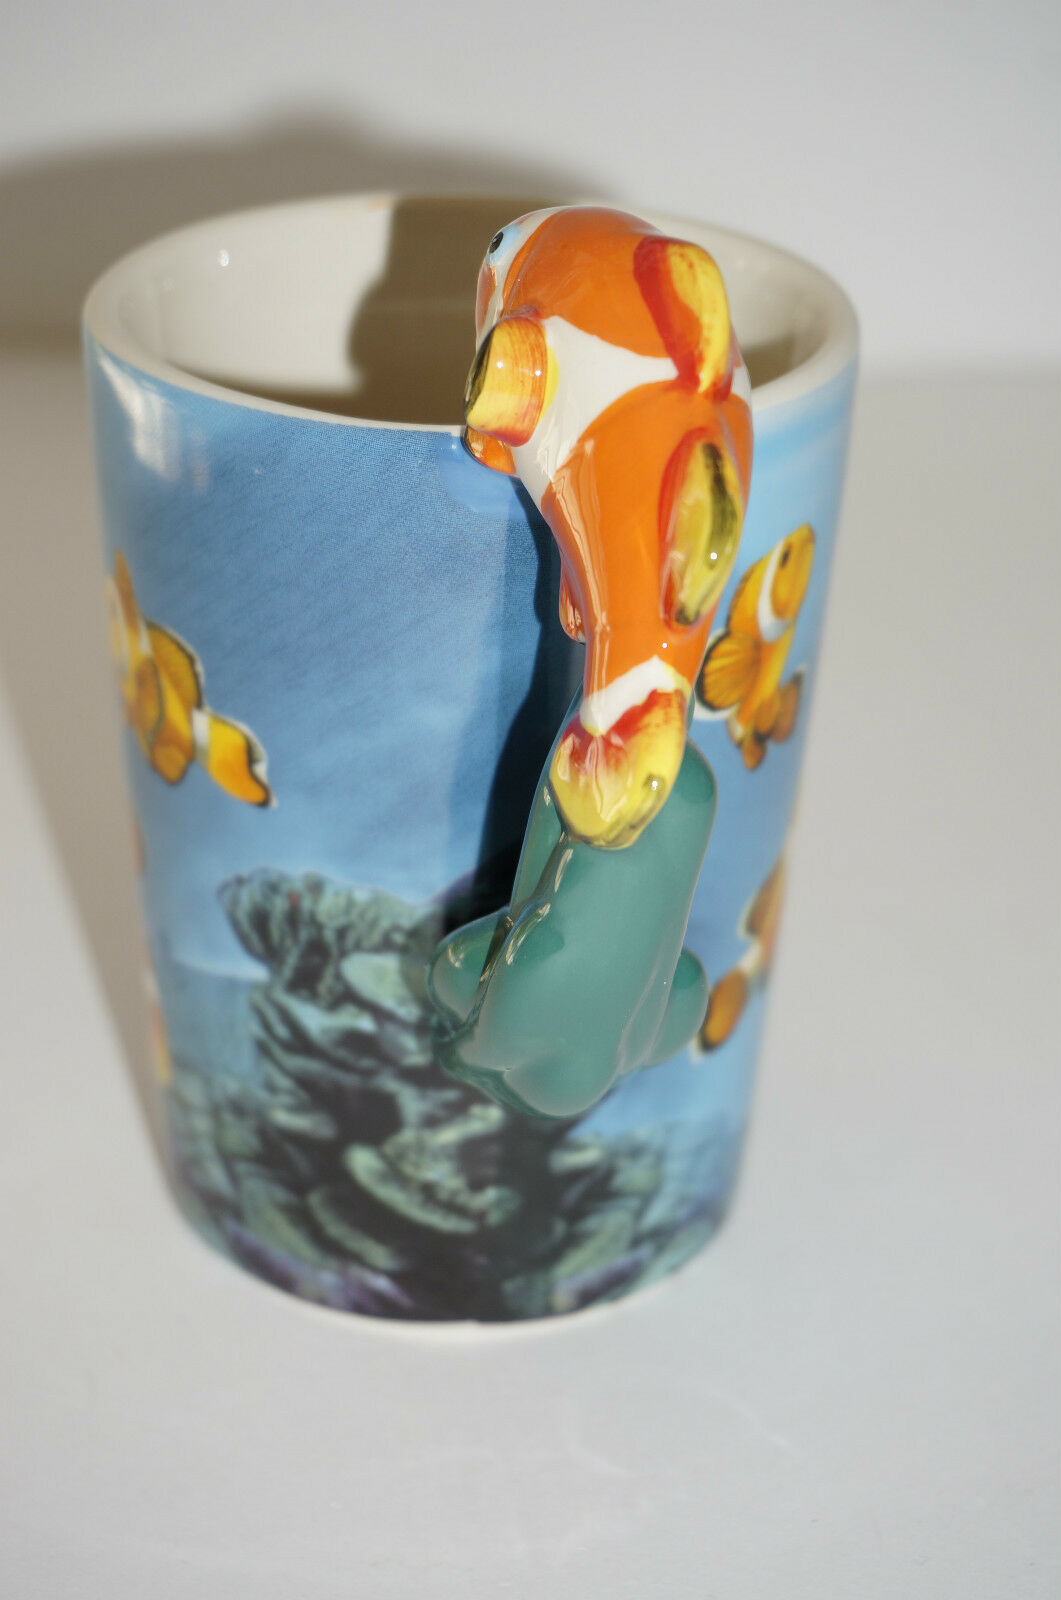 Nemo clown fish Coffee Mug Cup bone China Fantasy Animal jungle novelty gift